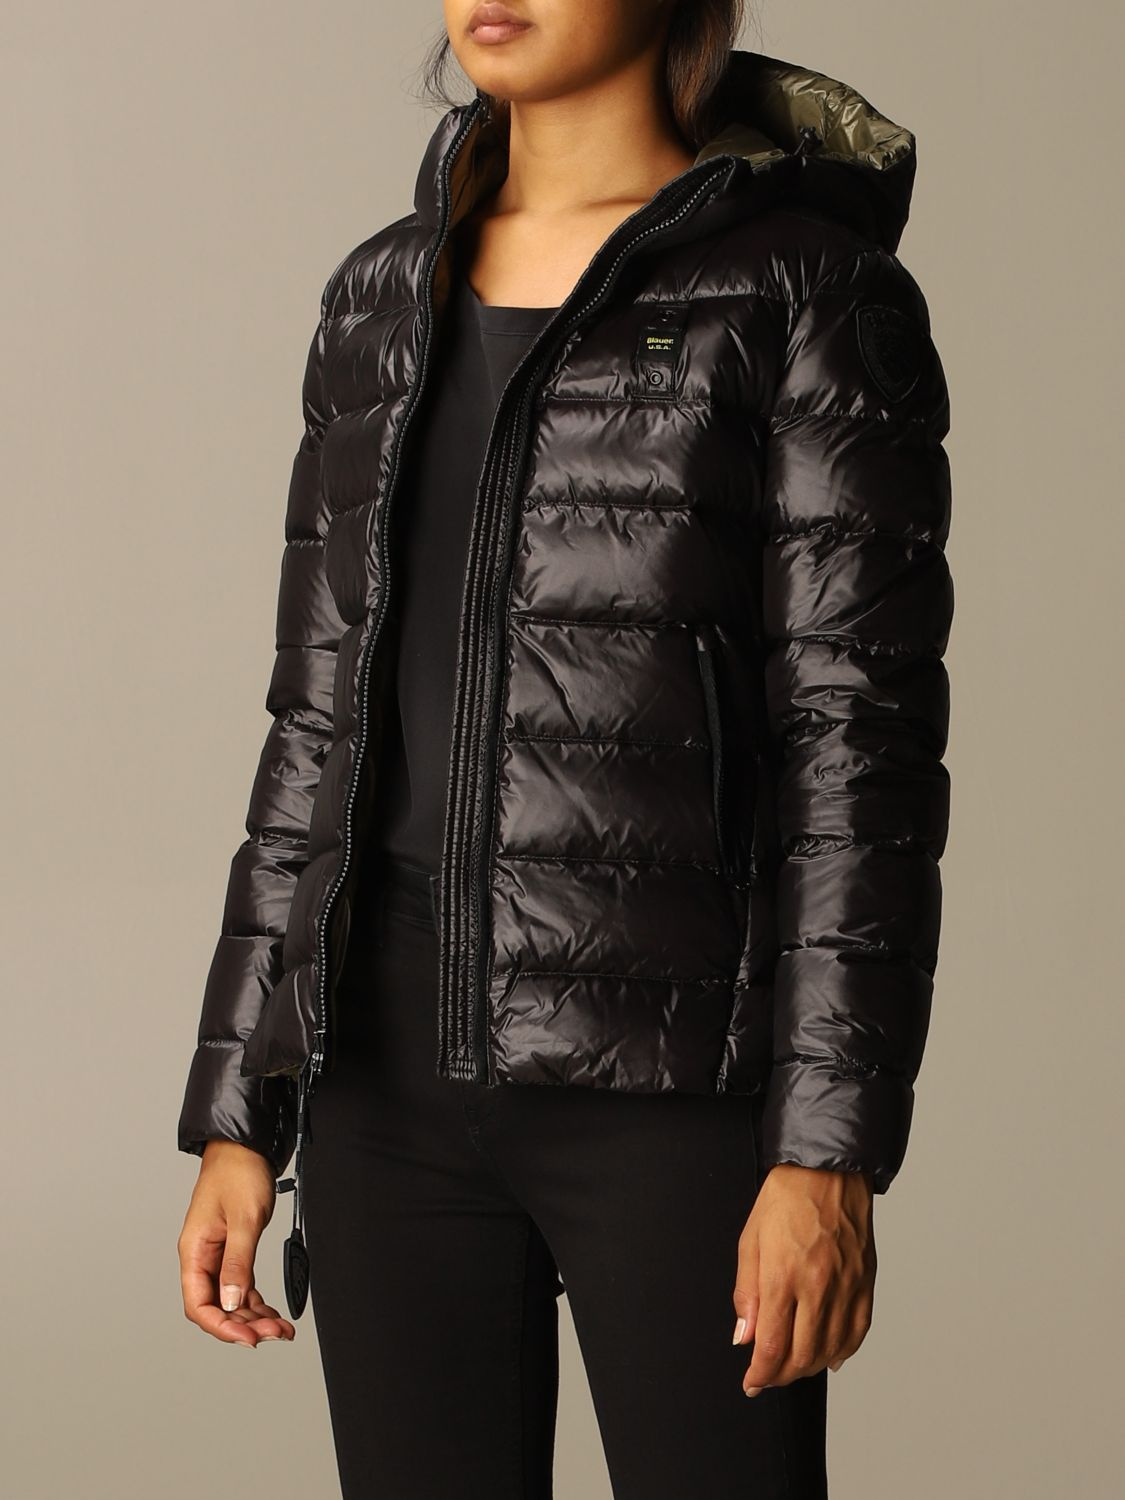 Jacket Blauer: Jacket women Blauer black 3